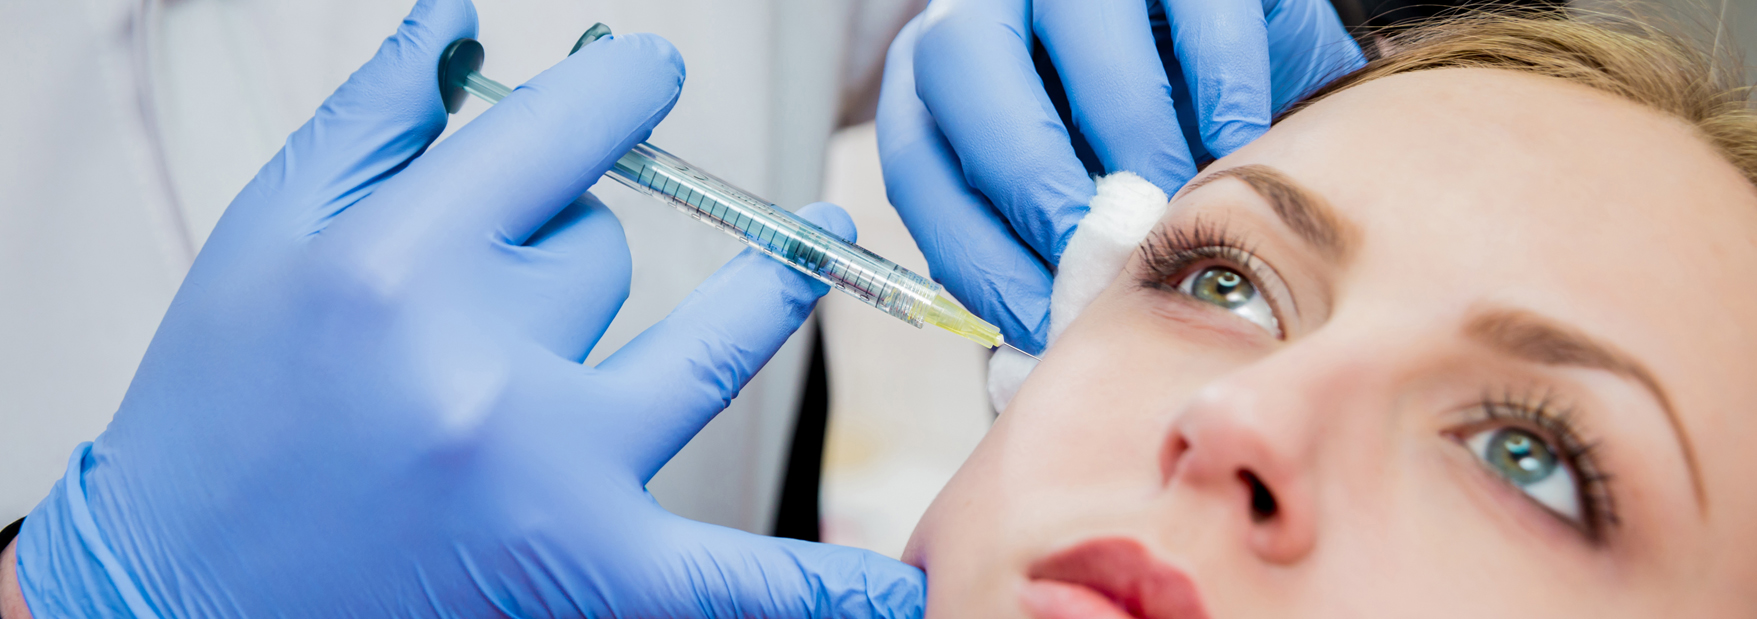 Botox, Dysport, Xeomin and dermal fillers are available at Dr. Flaiz's office.